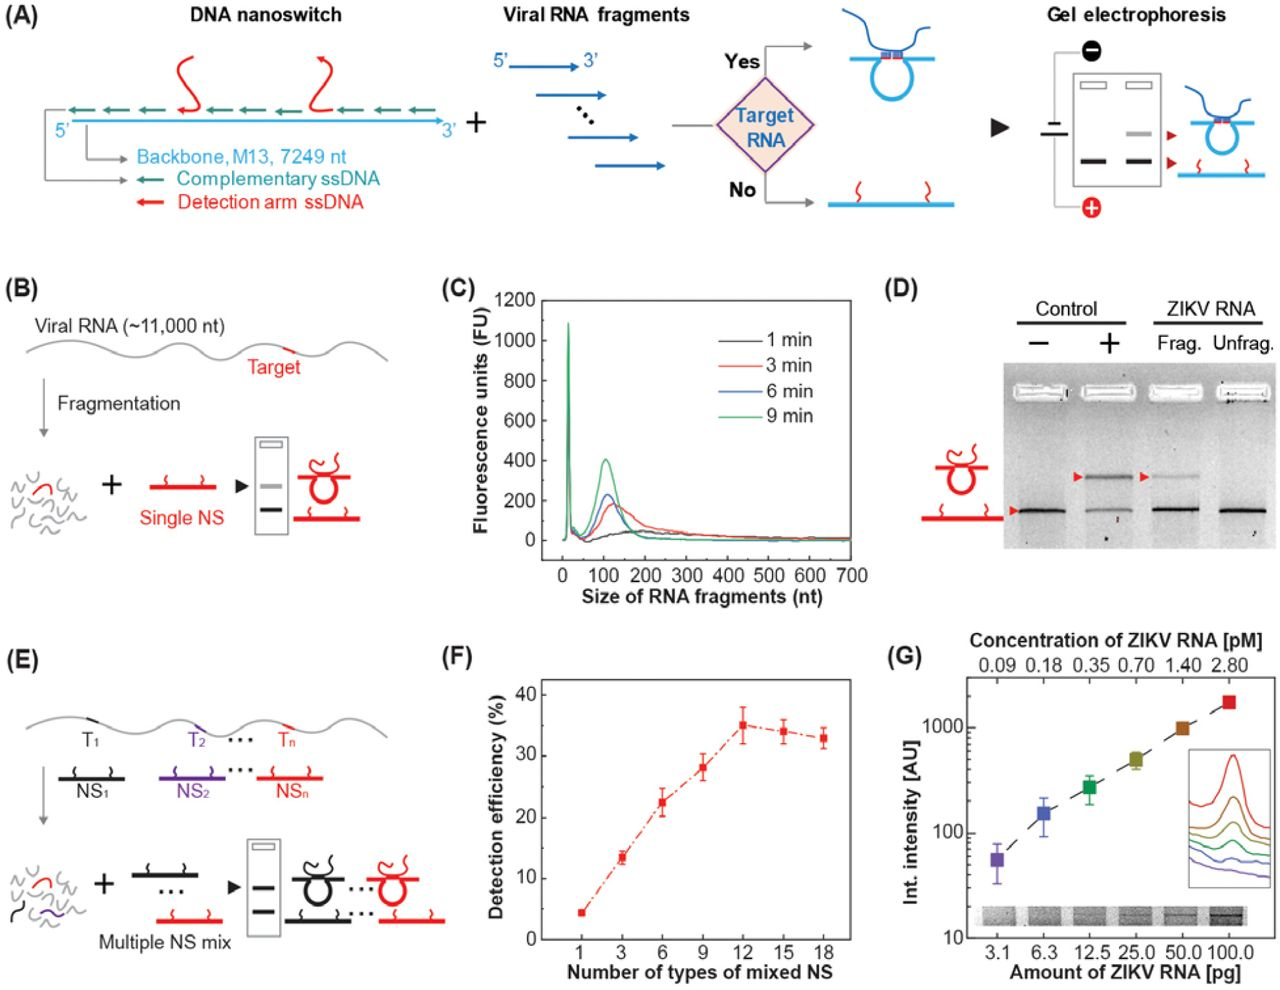 Detection of viral RNA using DNA nanoswitches.